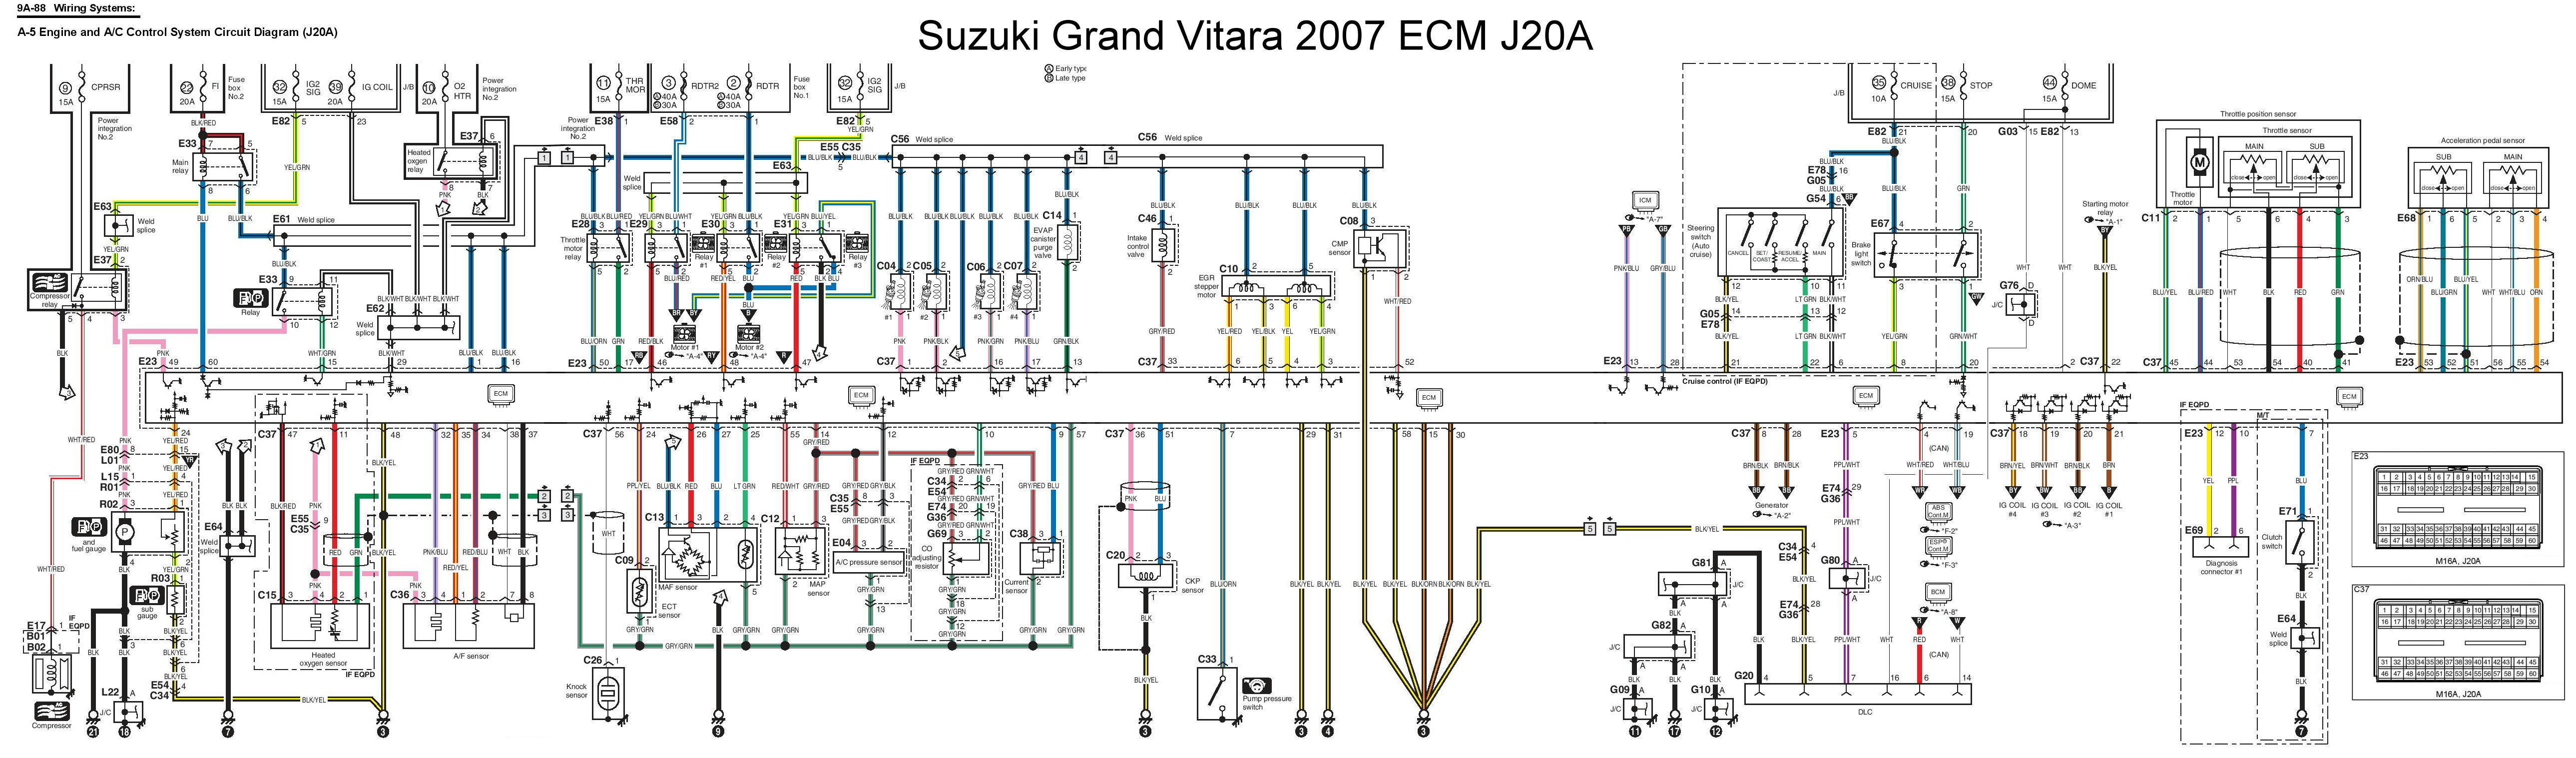 2008 Suzuki Xl7 Wiring Diagram 2007 Suzuki XL7 Headlight Bulb Replacement  2007 Suzuki Xl7 Wiring Diagram